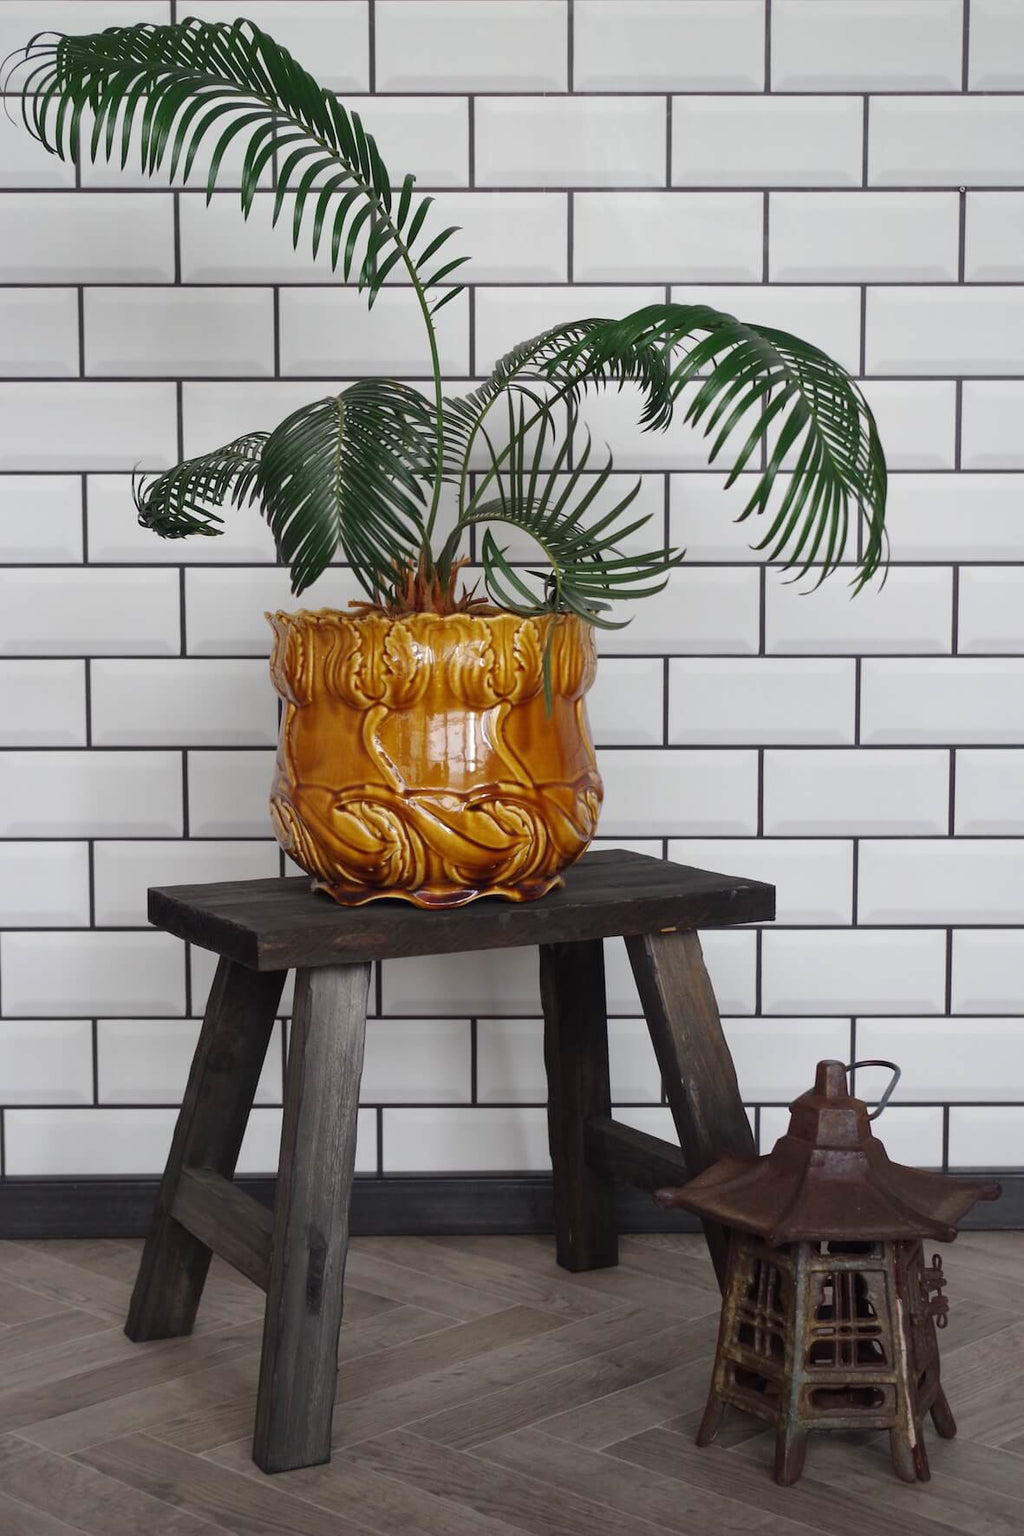 Rustic Wooden Plant Stool